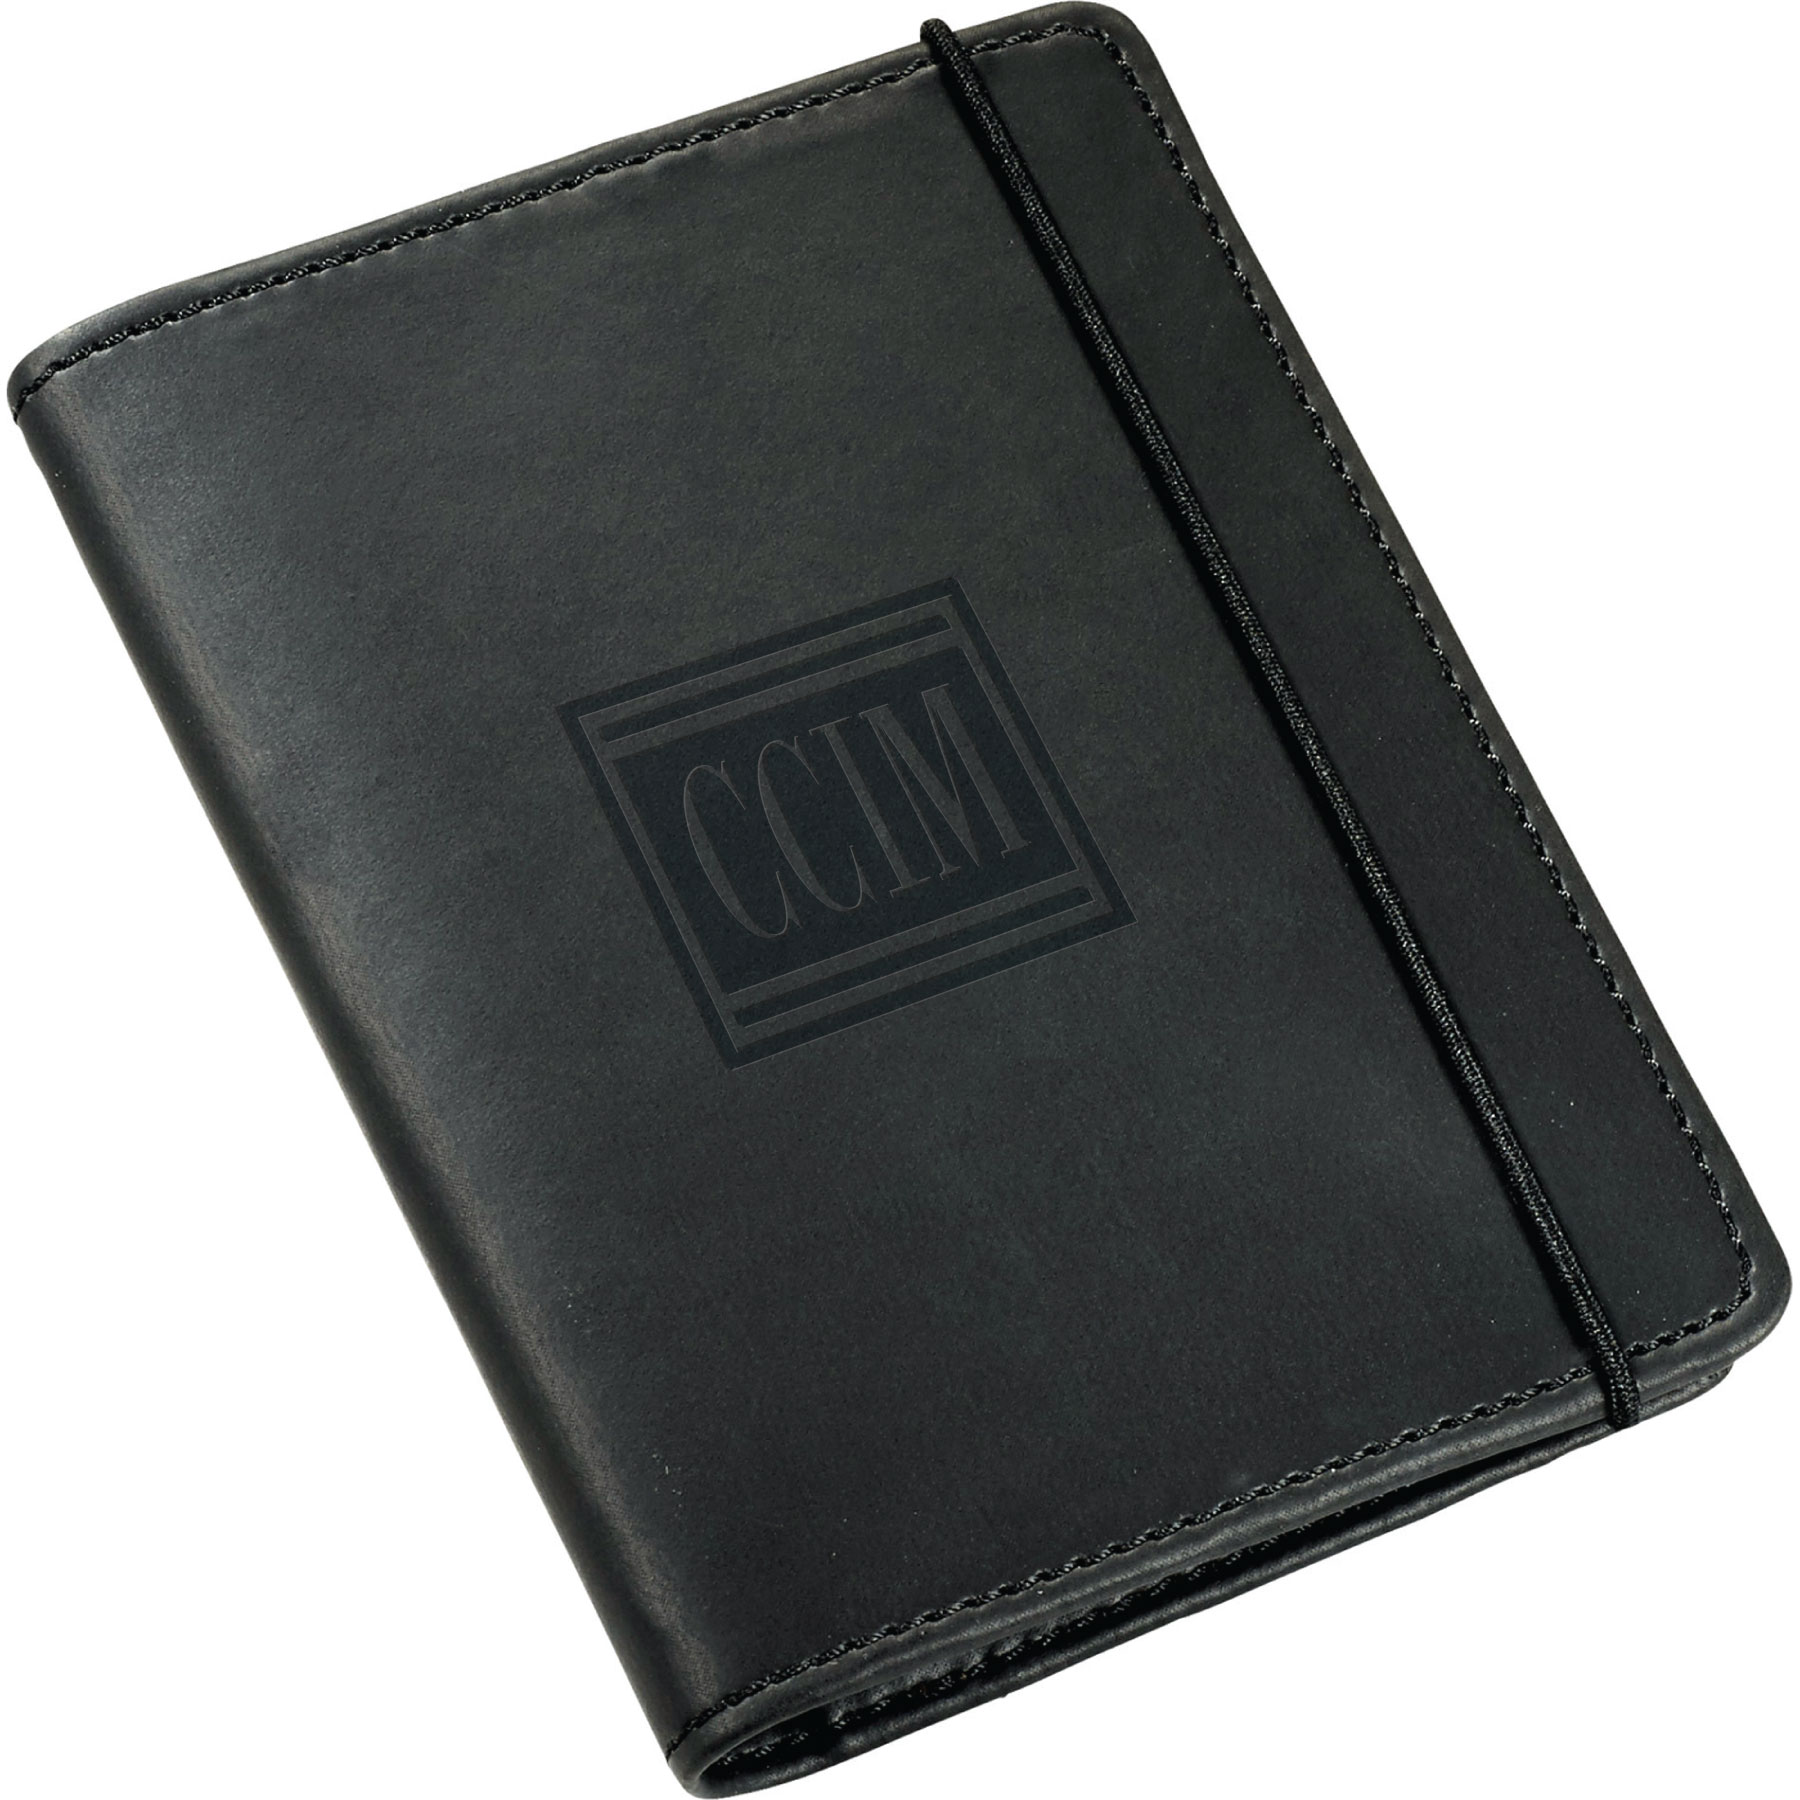 CCIM Soft Feel 24 Card Wallet Wallets,Cards,Business,Business Cards,Holders,Softs,Feels,Feals,Credit Cards,Credits